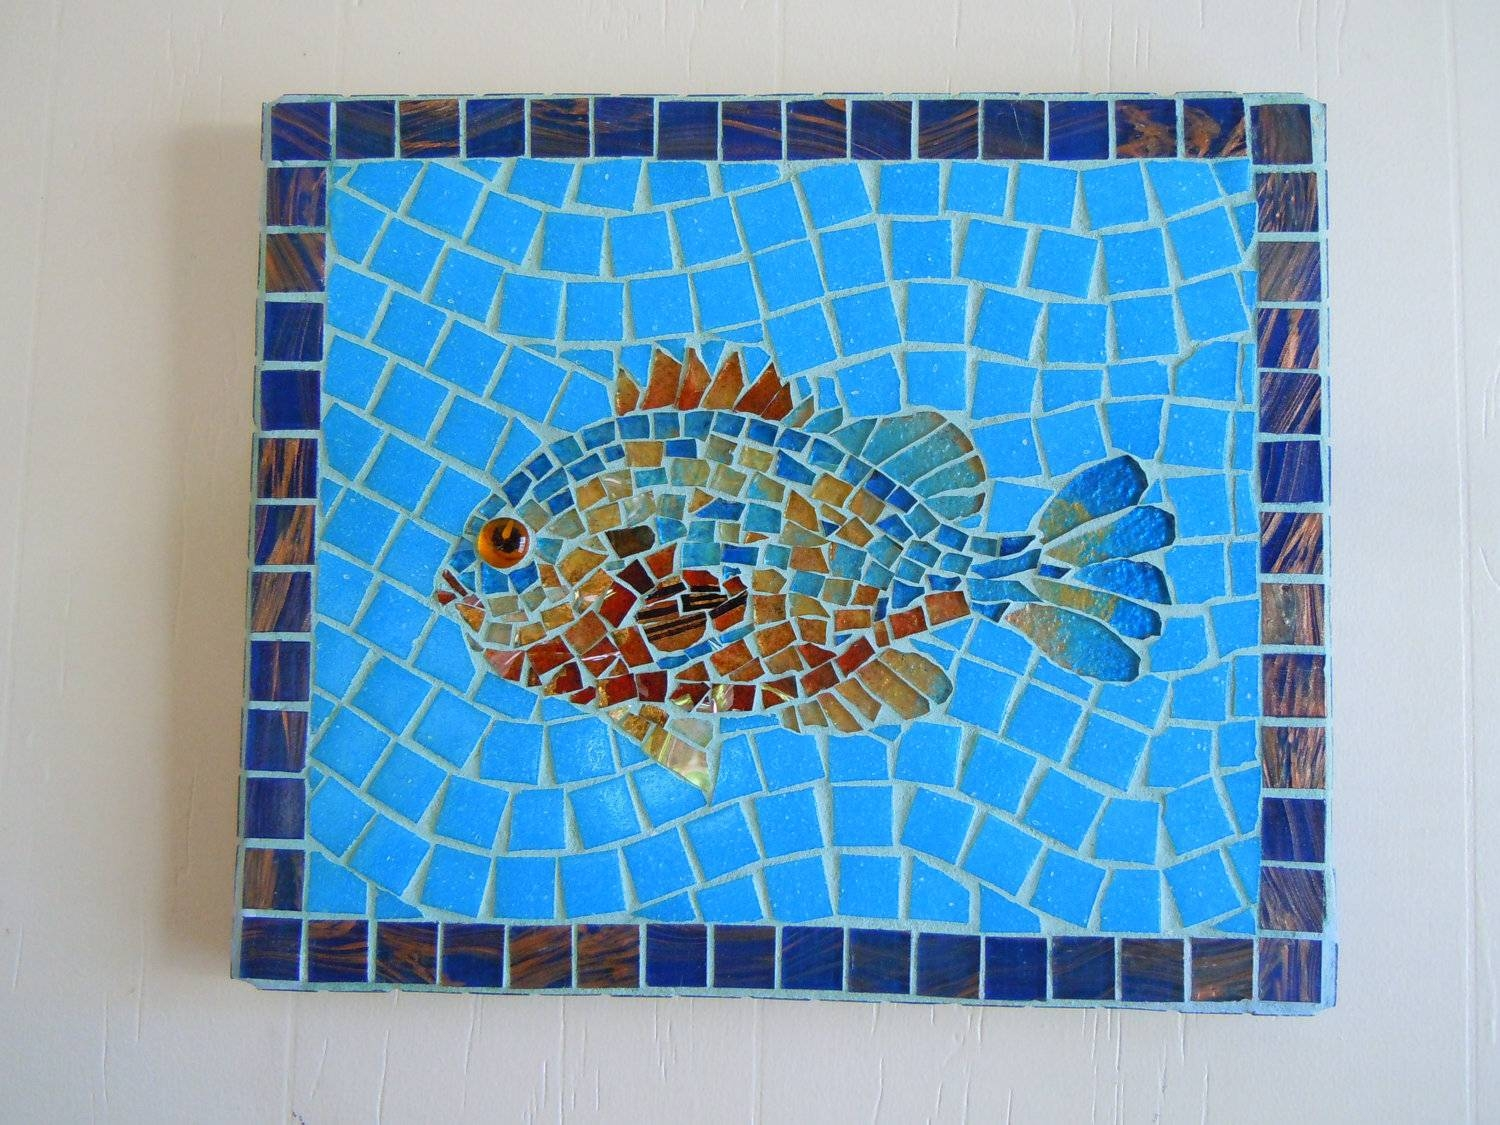 Mosaic Fish Home Decor Beach Cottage Decor Wall Art With Regard To Most Current Beach Cottage Wall Art (View 15 of 25)